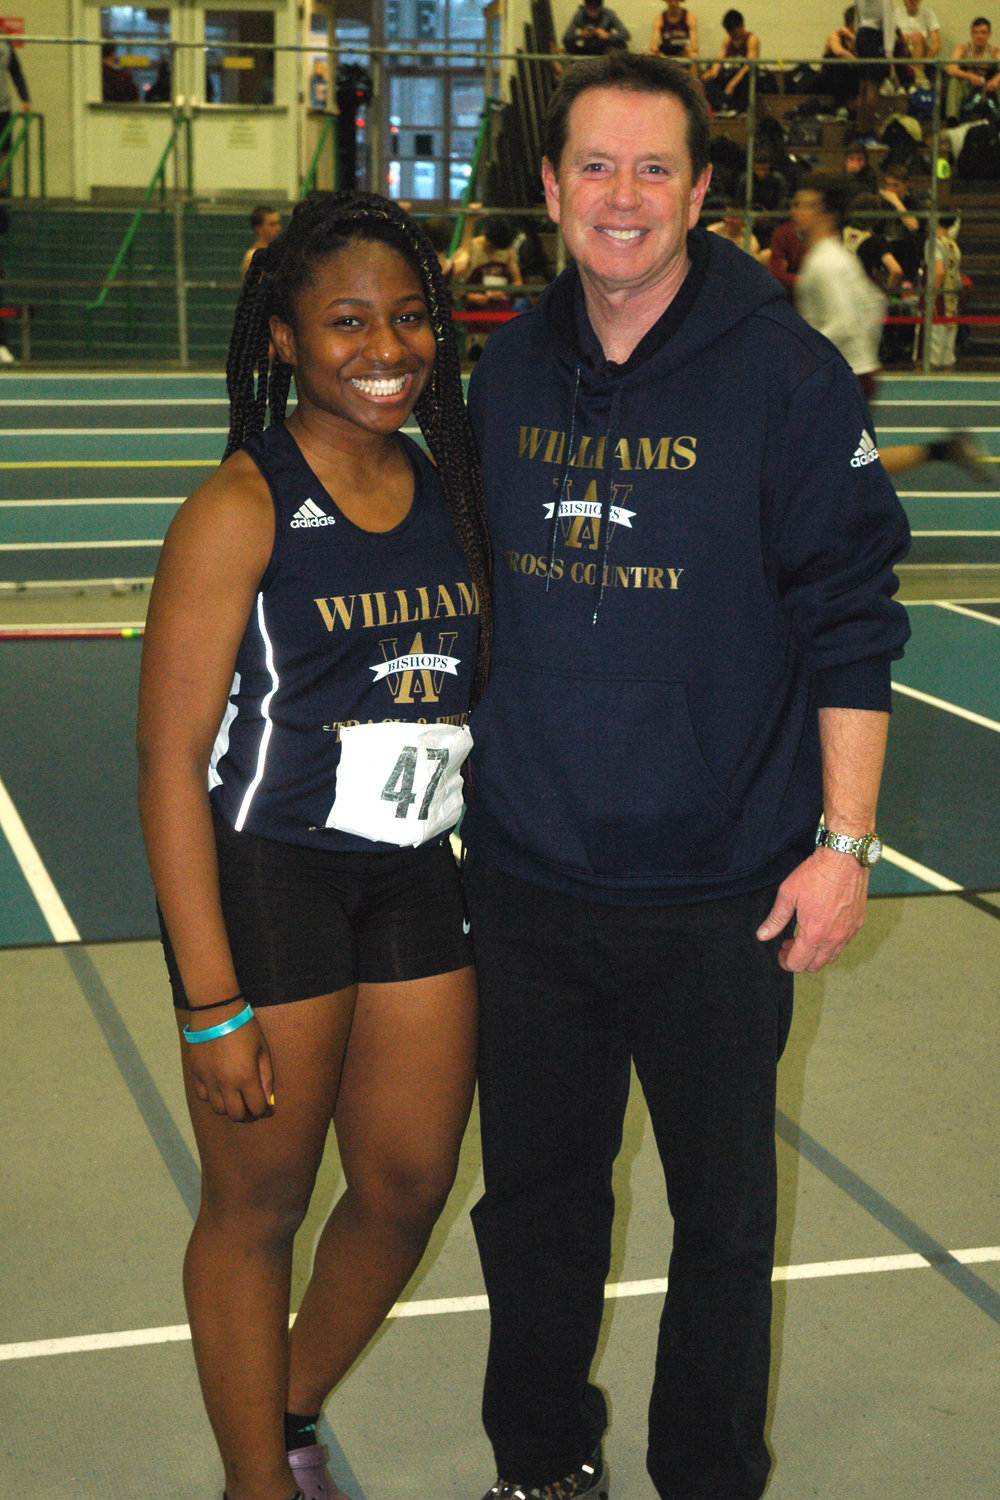 Working together: Senior Chigozie Sumani with her four year coach, Bryan Van Dorpe